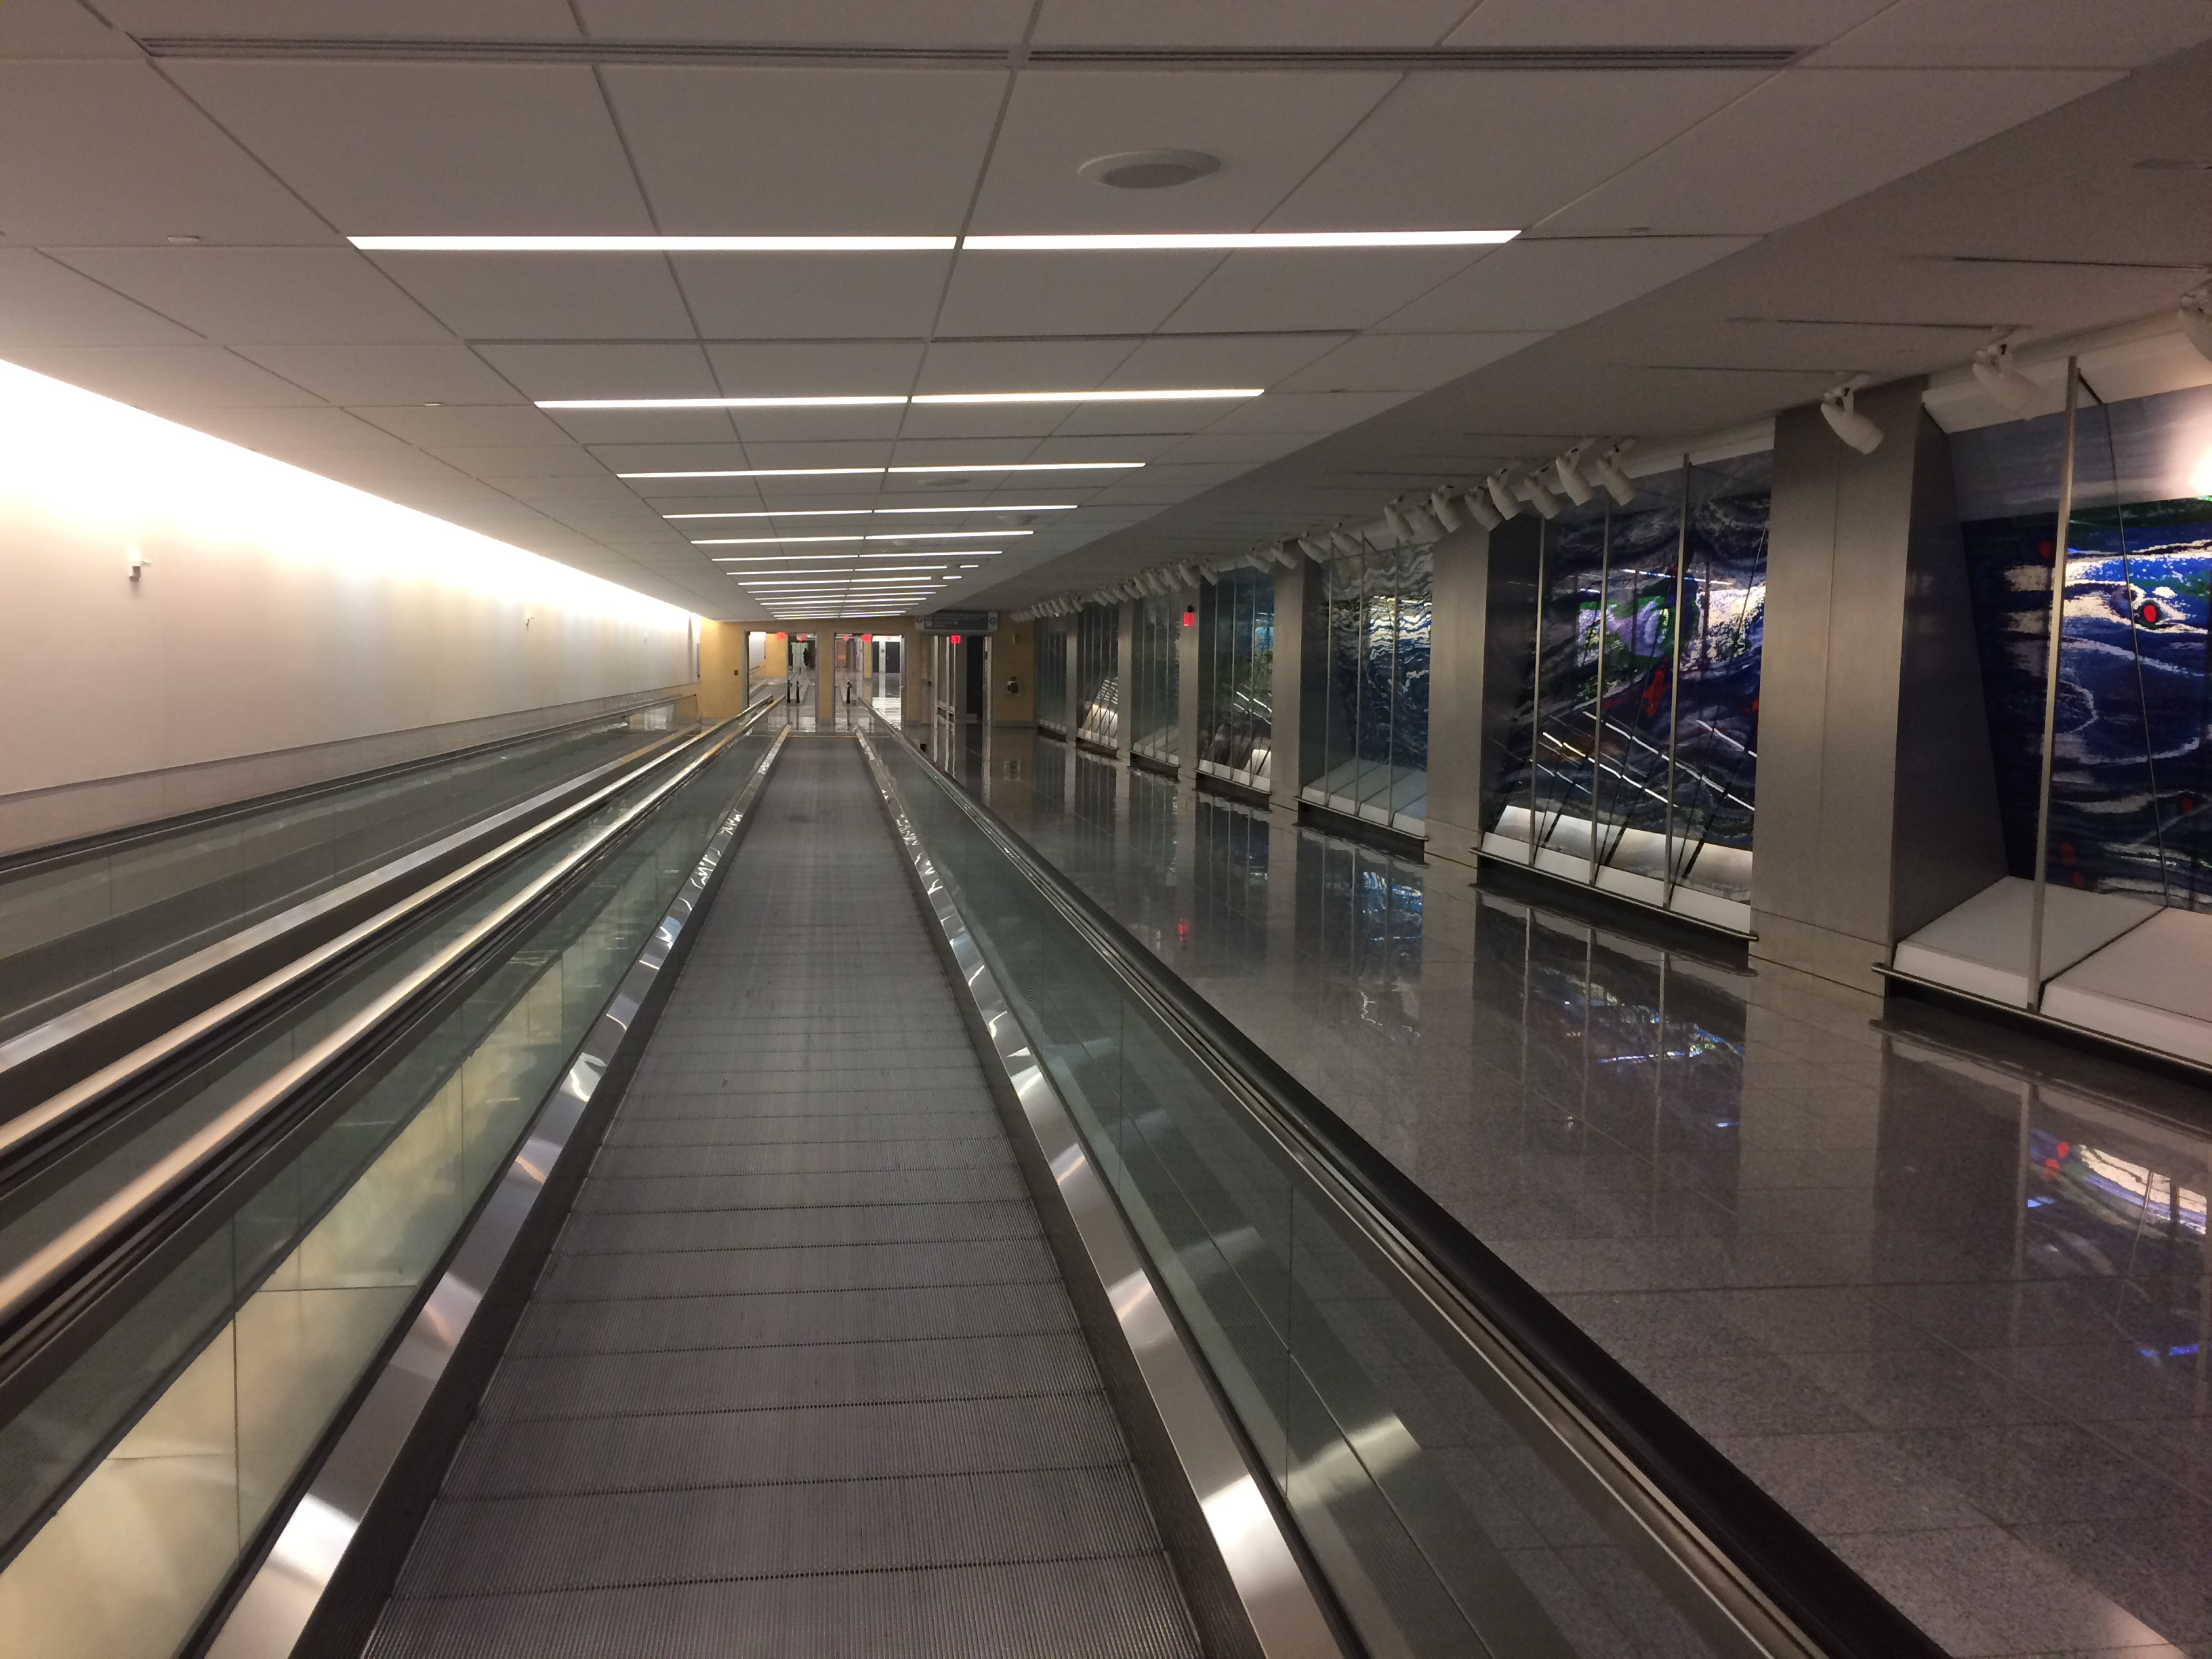 Dr. Airport or: How I learned to Stop Worrying and Love the Terminal